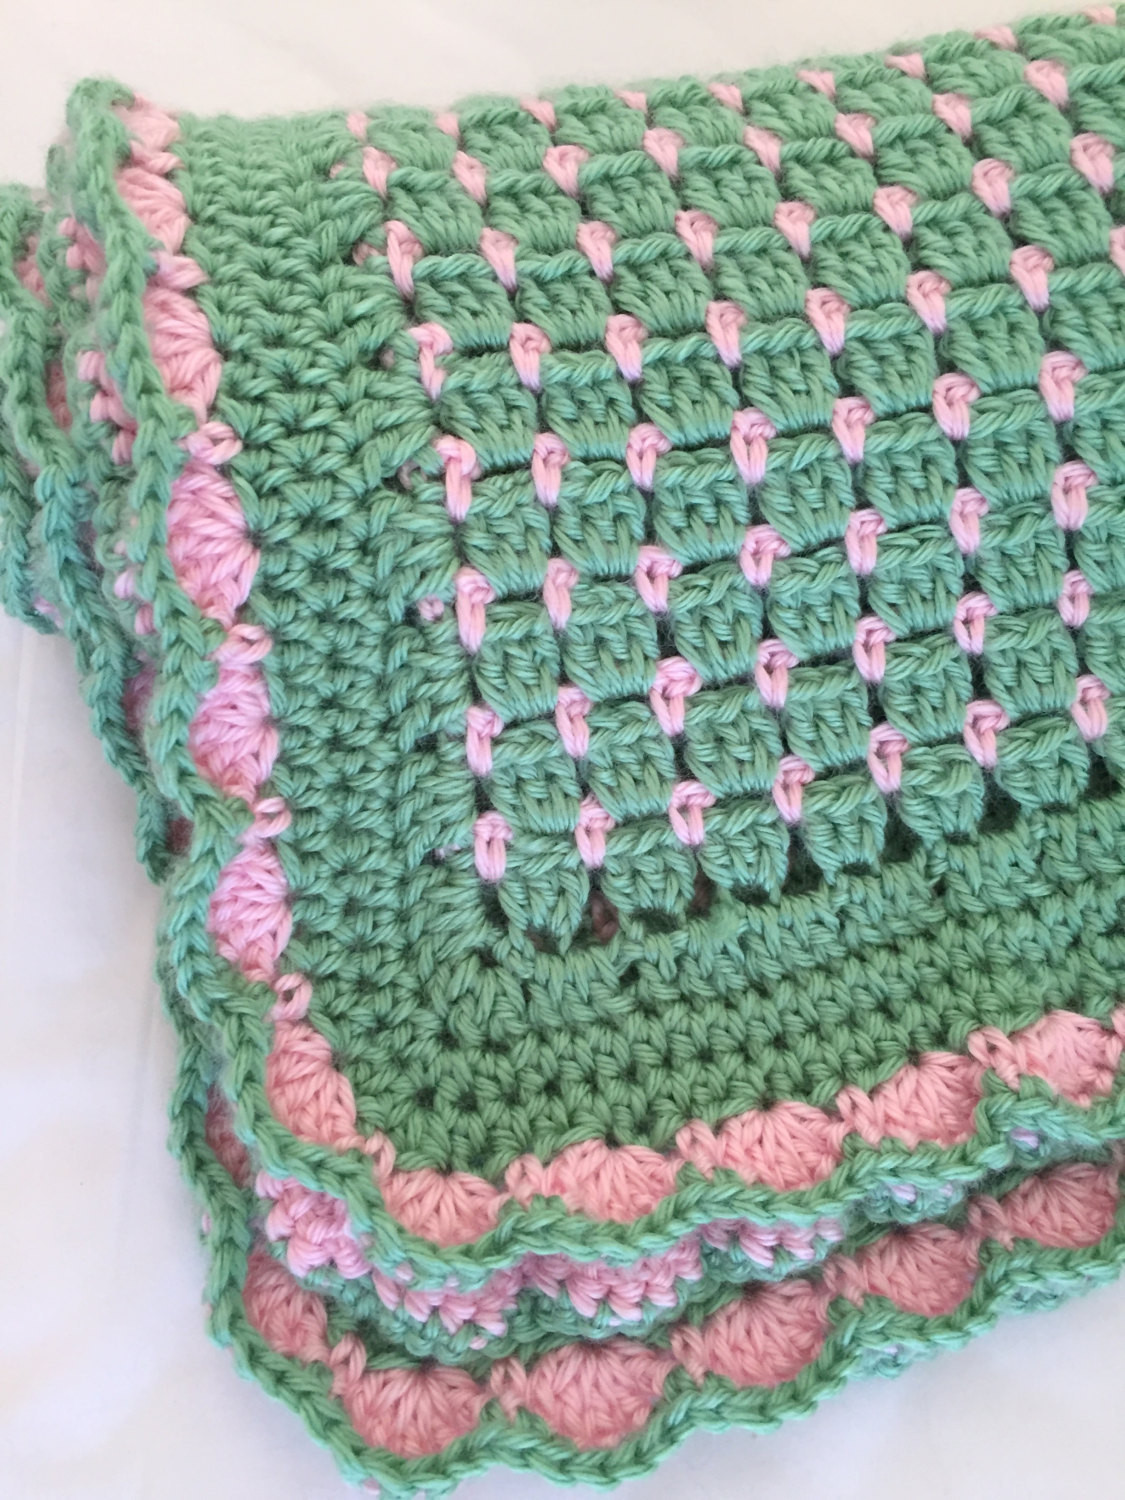 Blanket Patterns Unique Crochet and Knitting Patterns — Crochet Baby Blanket Of Fresh 49 Pics Blanket Patterns